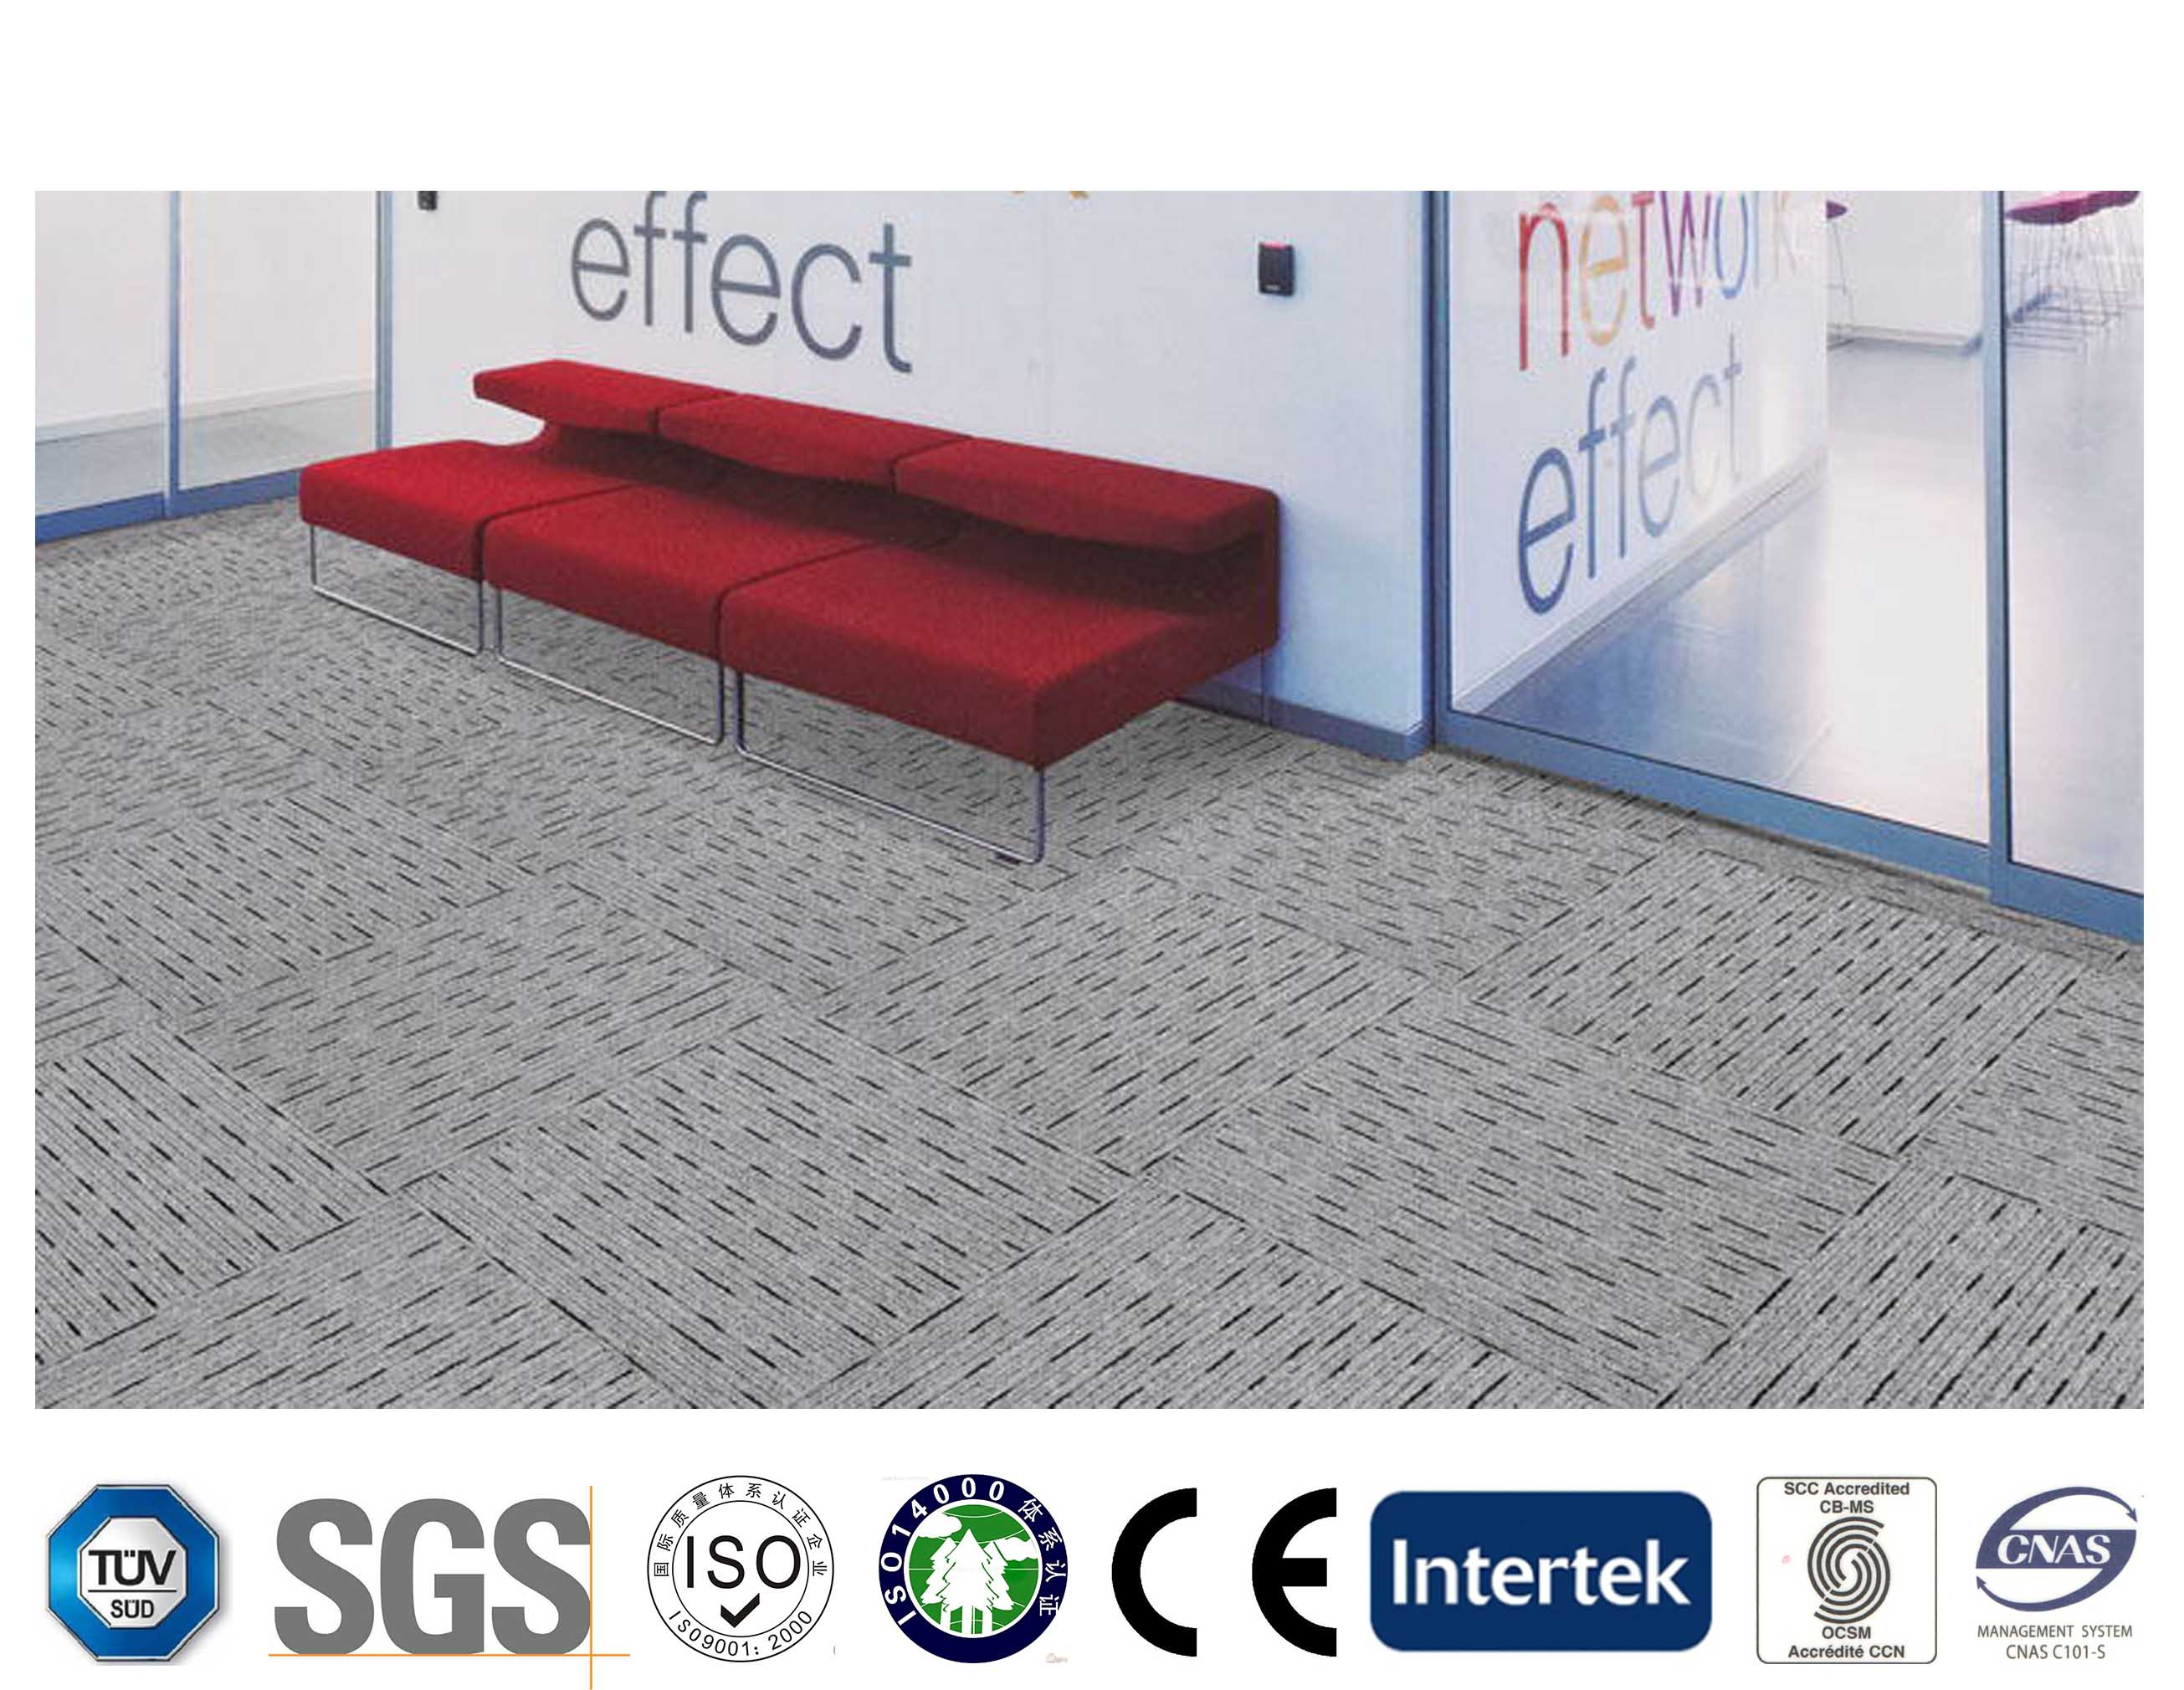 MB Series of Carpets